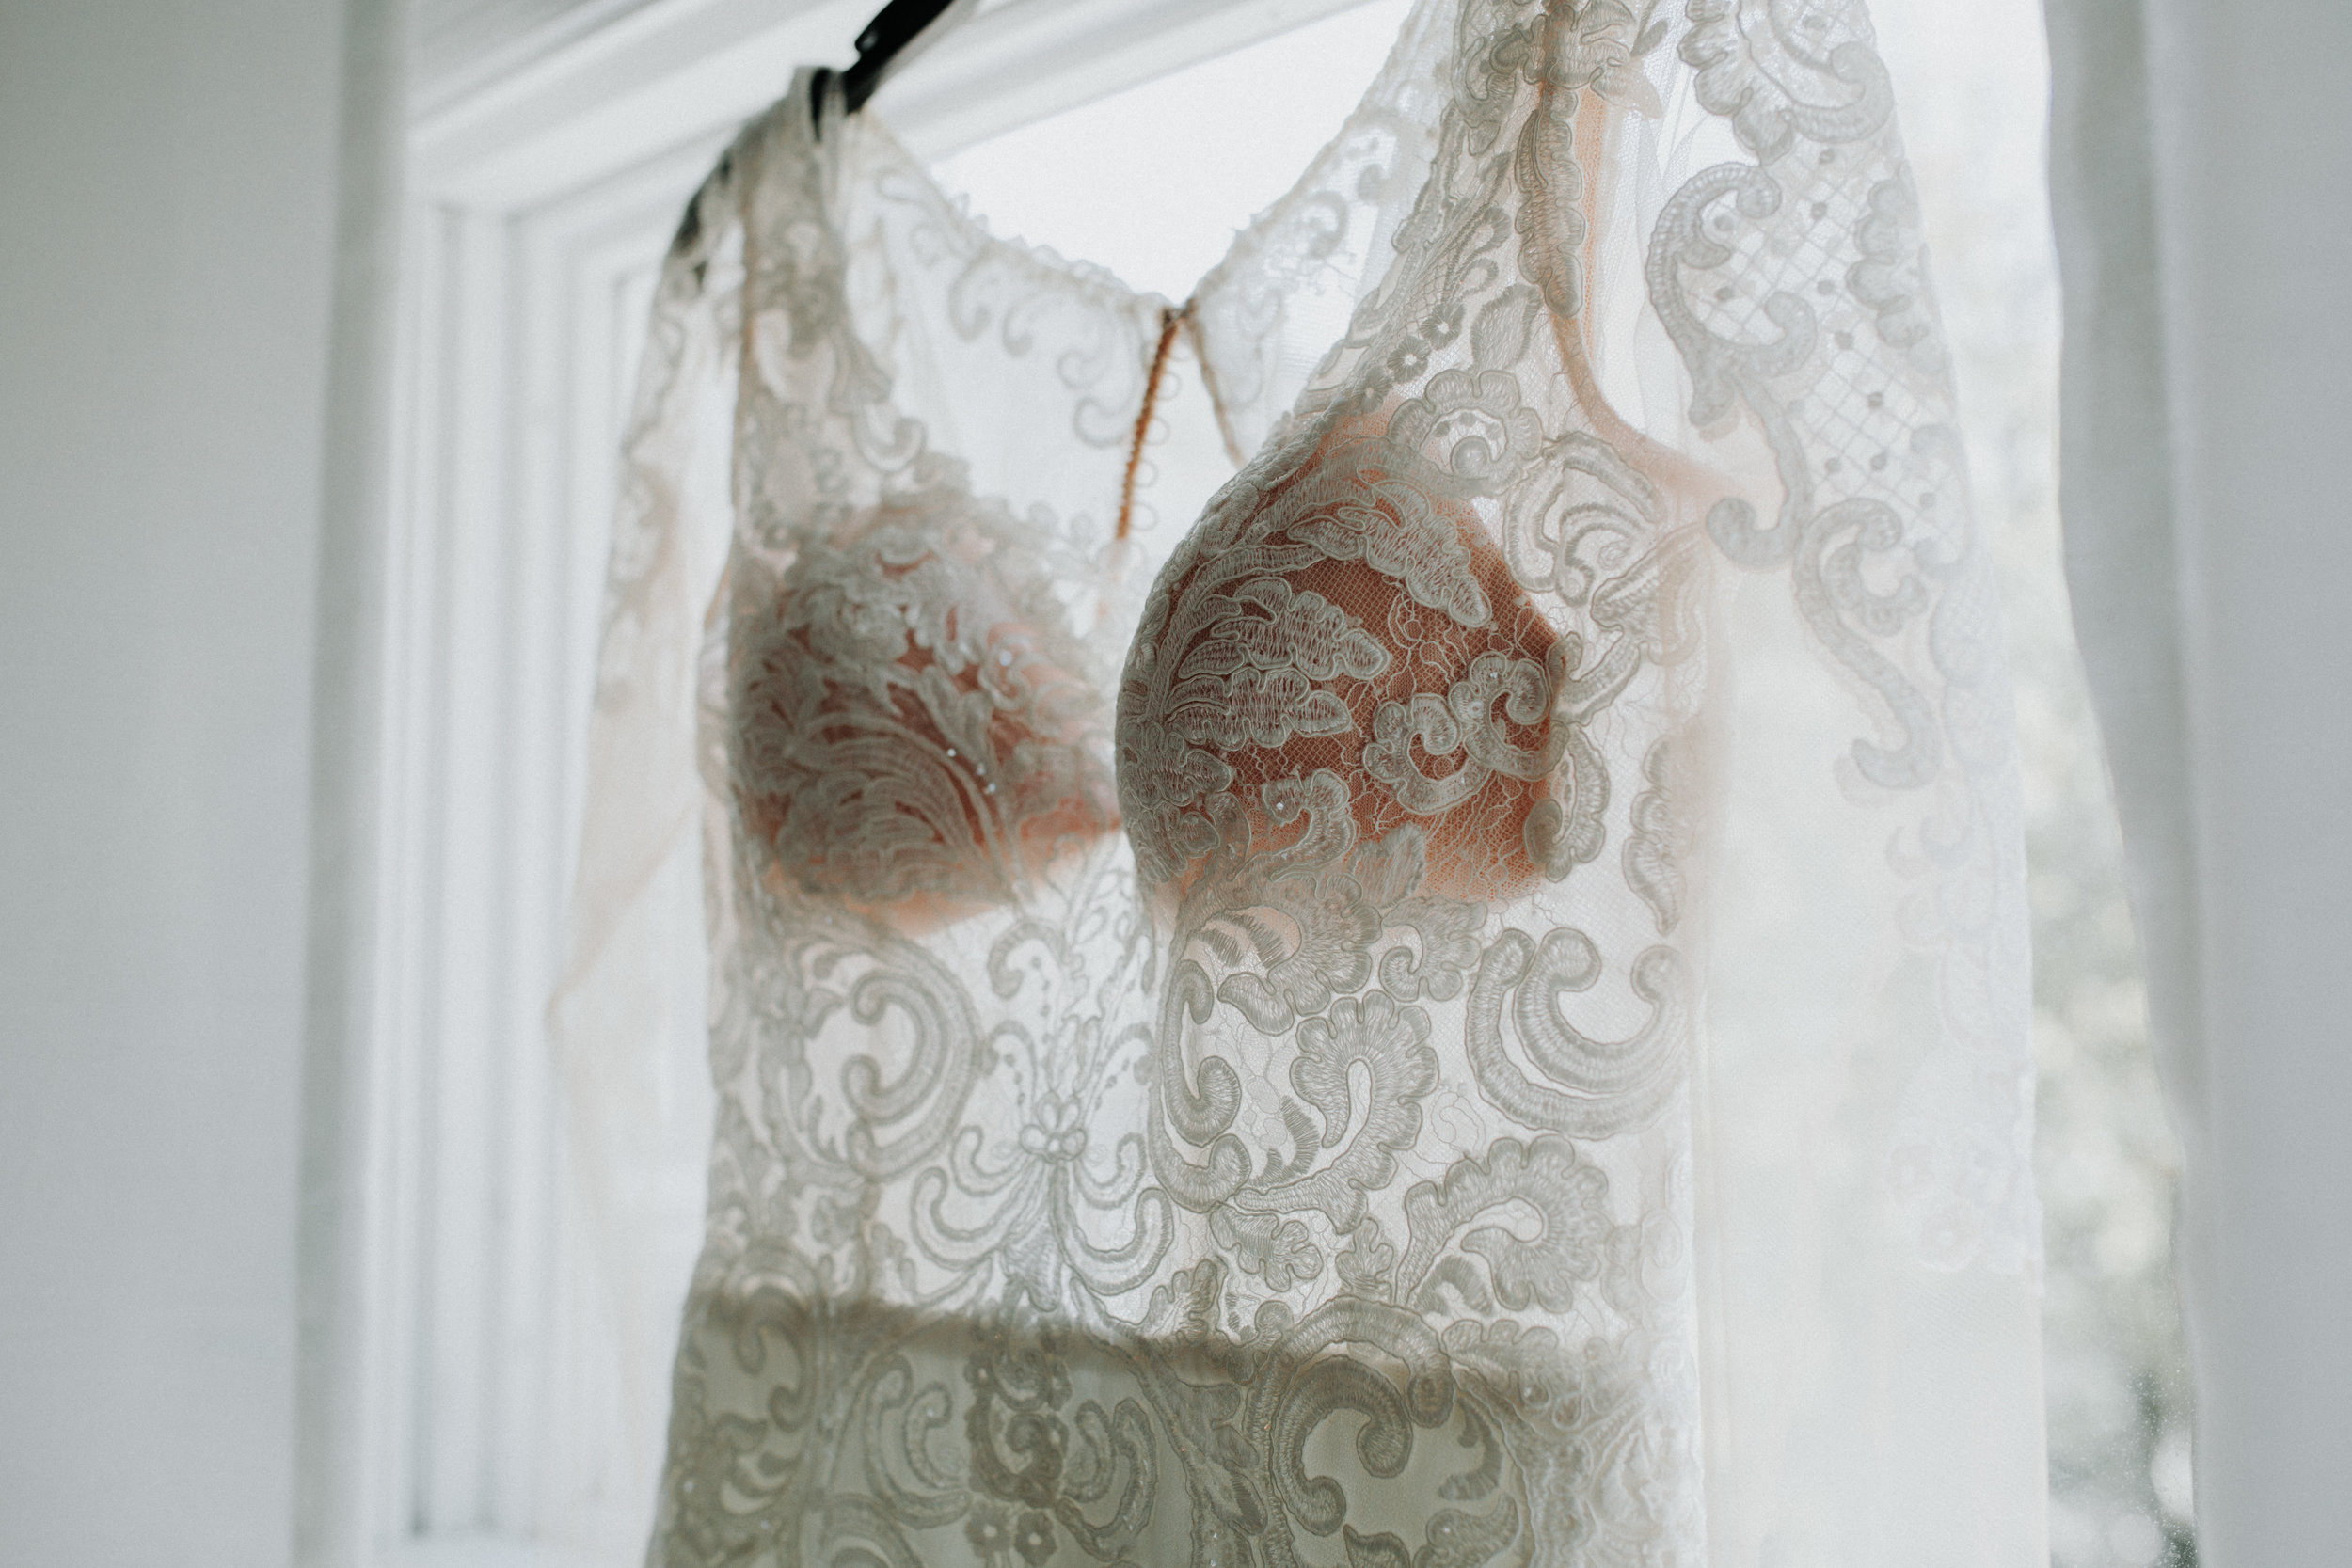 Gorgeous Lace Wedding Dress - Dara's Garden Knoxville East Tennessee Wedding — The Overwhelmed Bride Wedding Blog